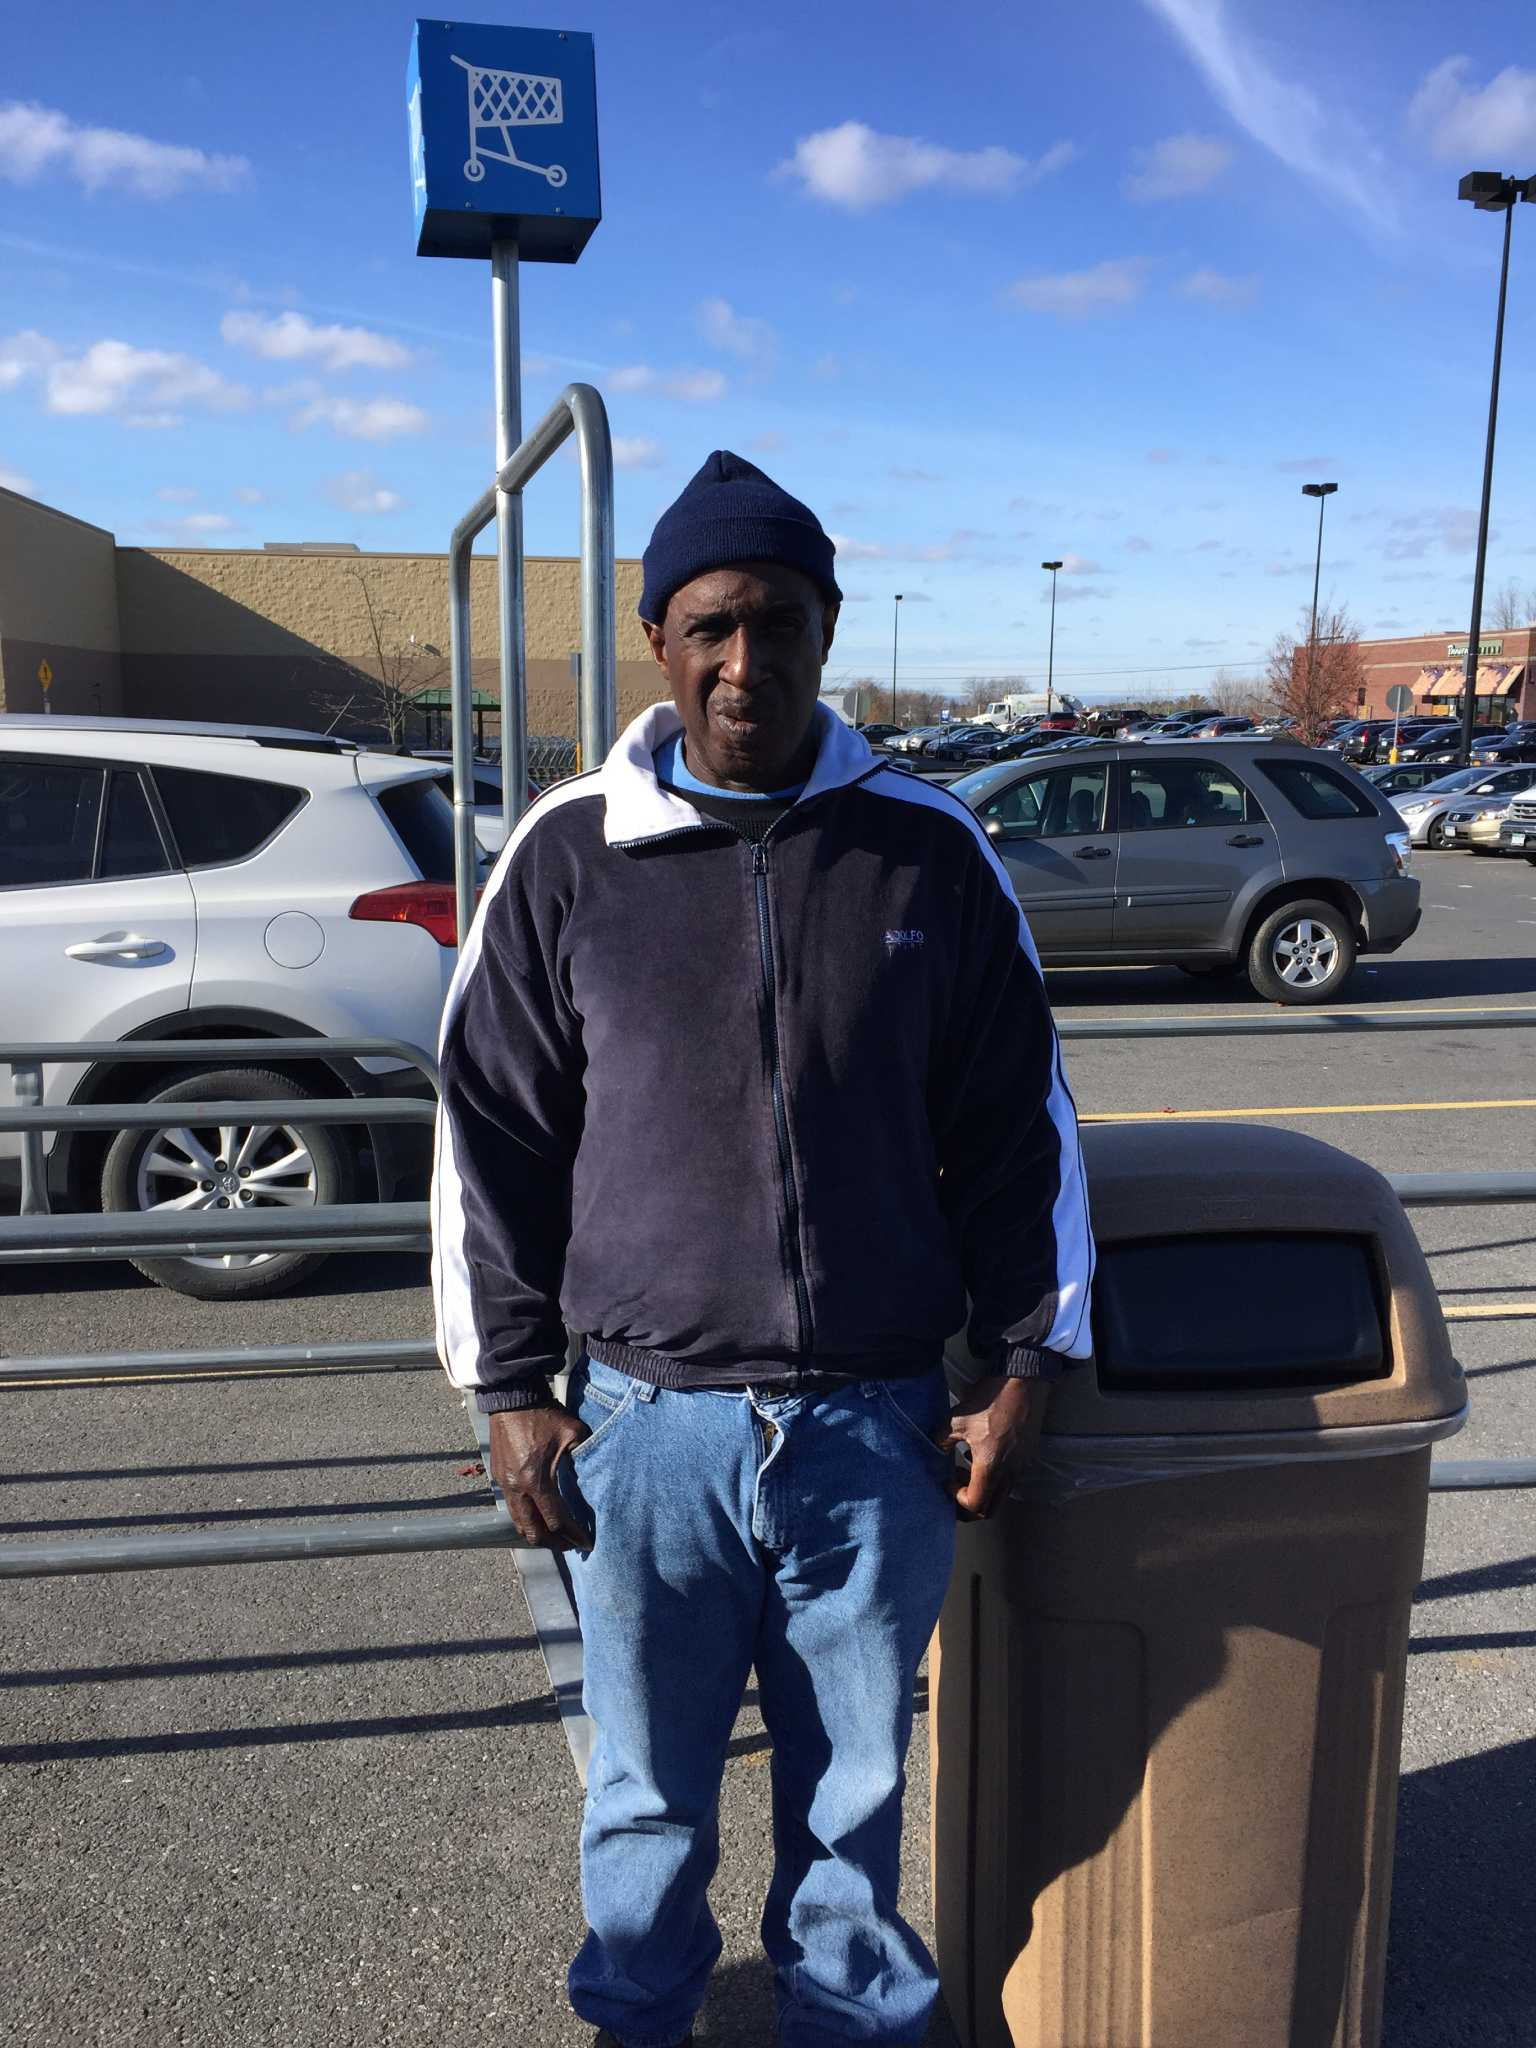 Support Pours In For Fired E Greenbush Walmart Employee Who Redeemed 5 10 Of Cans